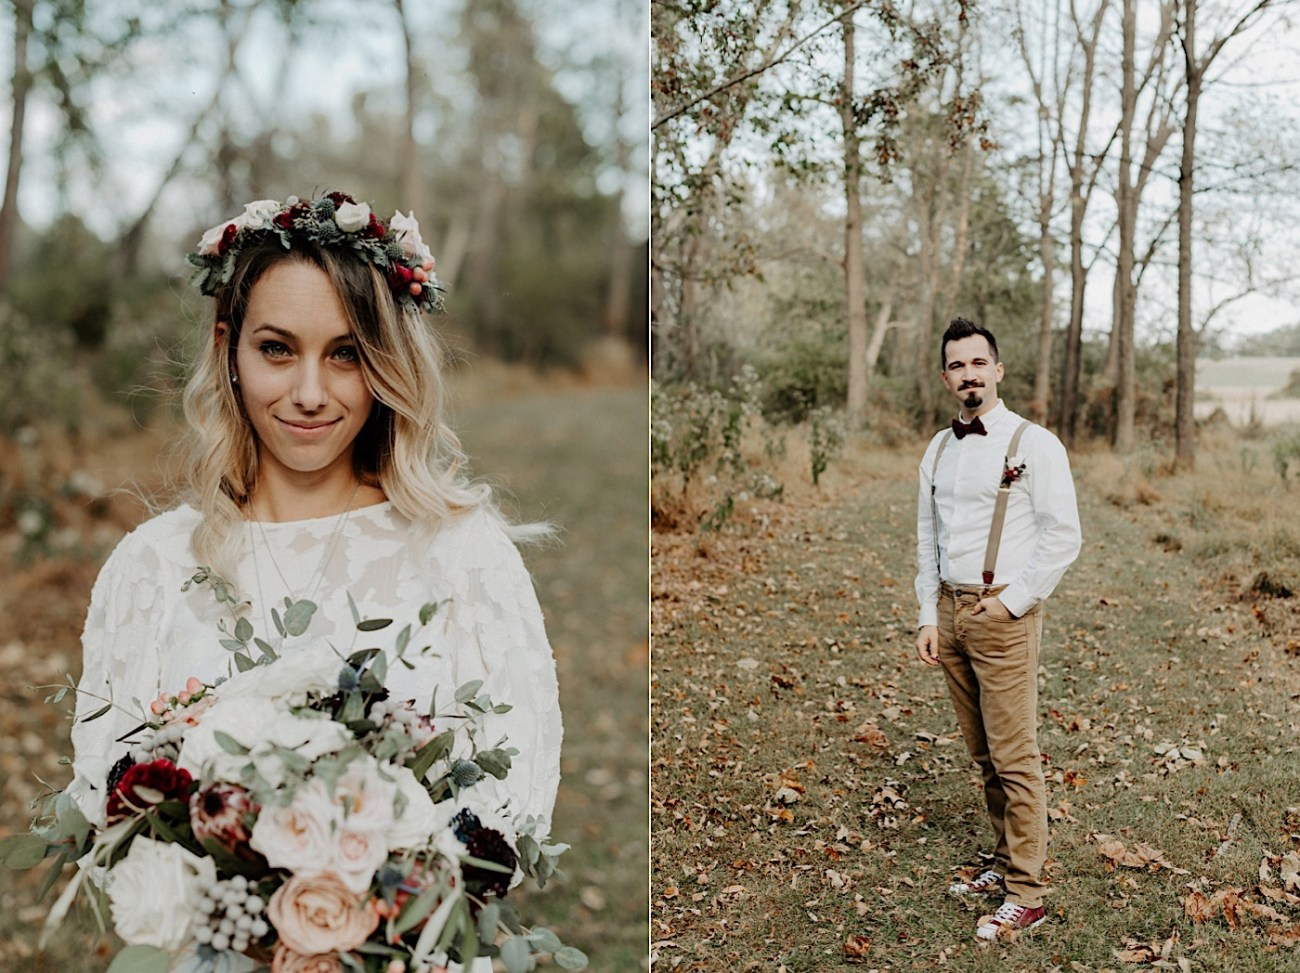 Woolverton Inn Elopement NJ Wedding Photographer Boho Wedding 013